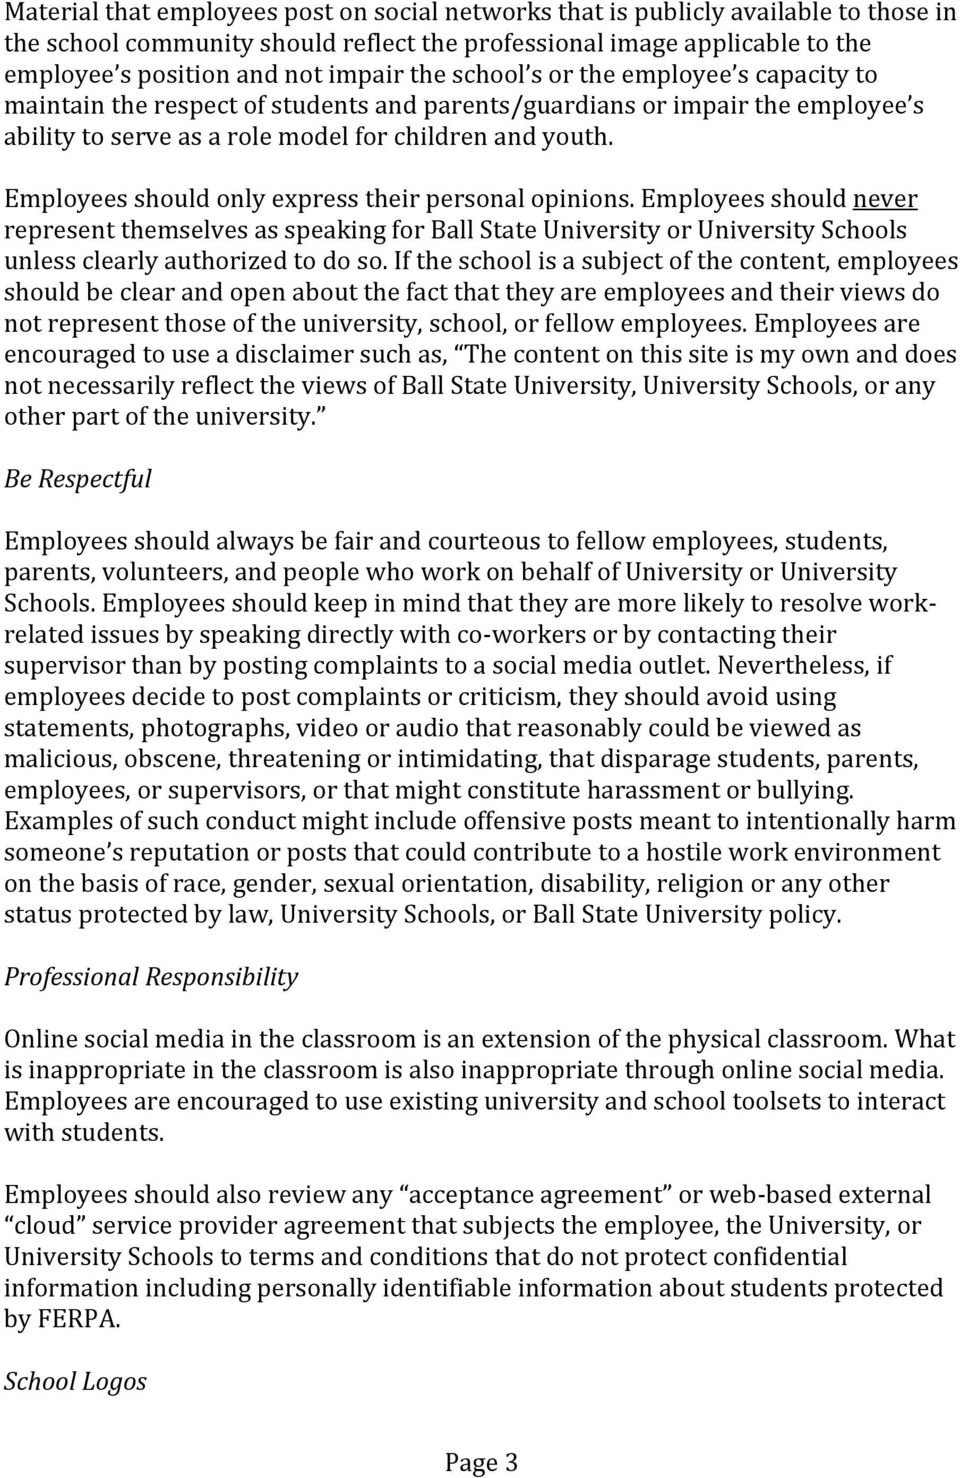 Employees should only express their personal opinions. Employees should never represent themselves as speaking for Ball State University or University Schools unless clearly authorized to do so.